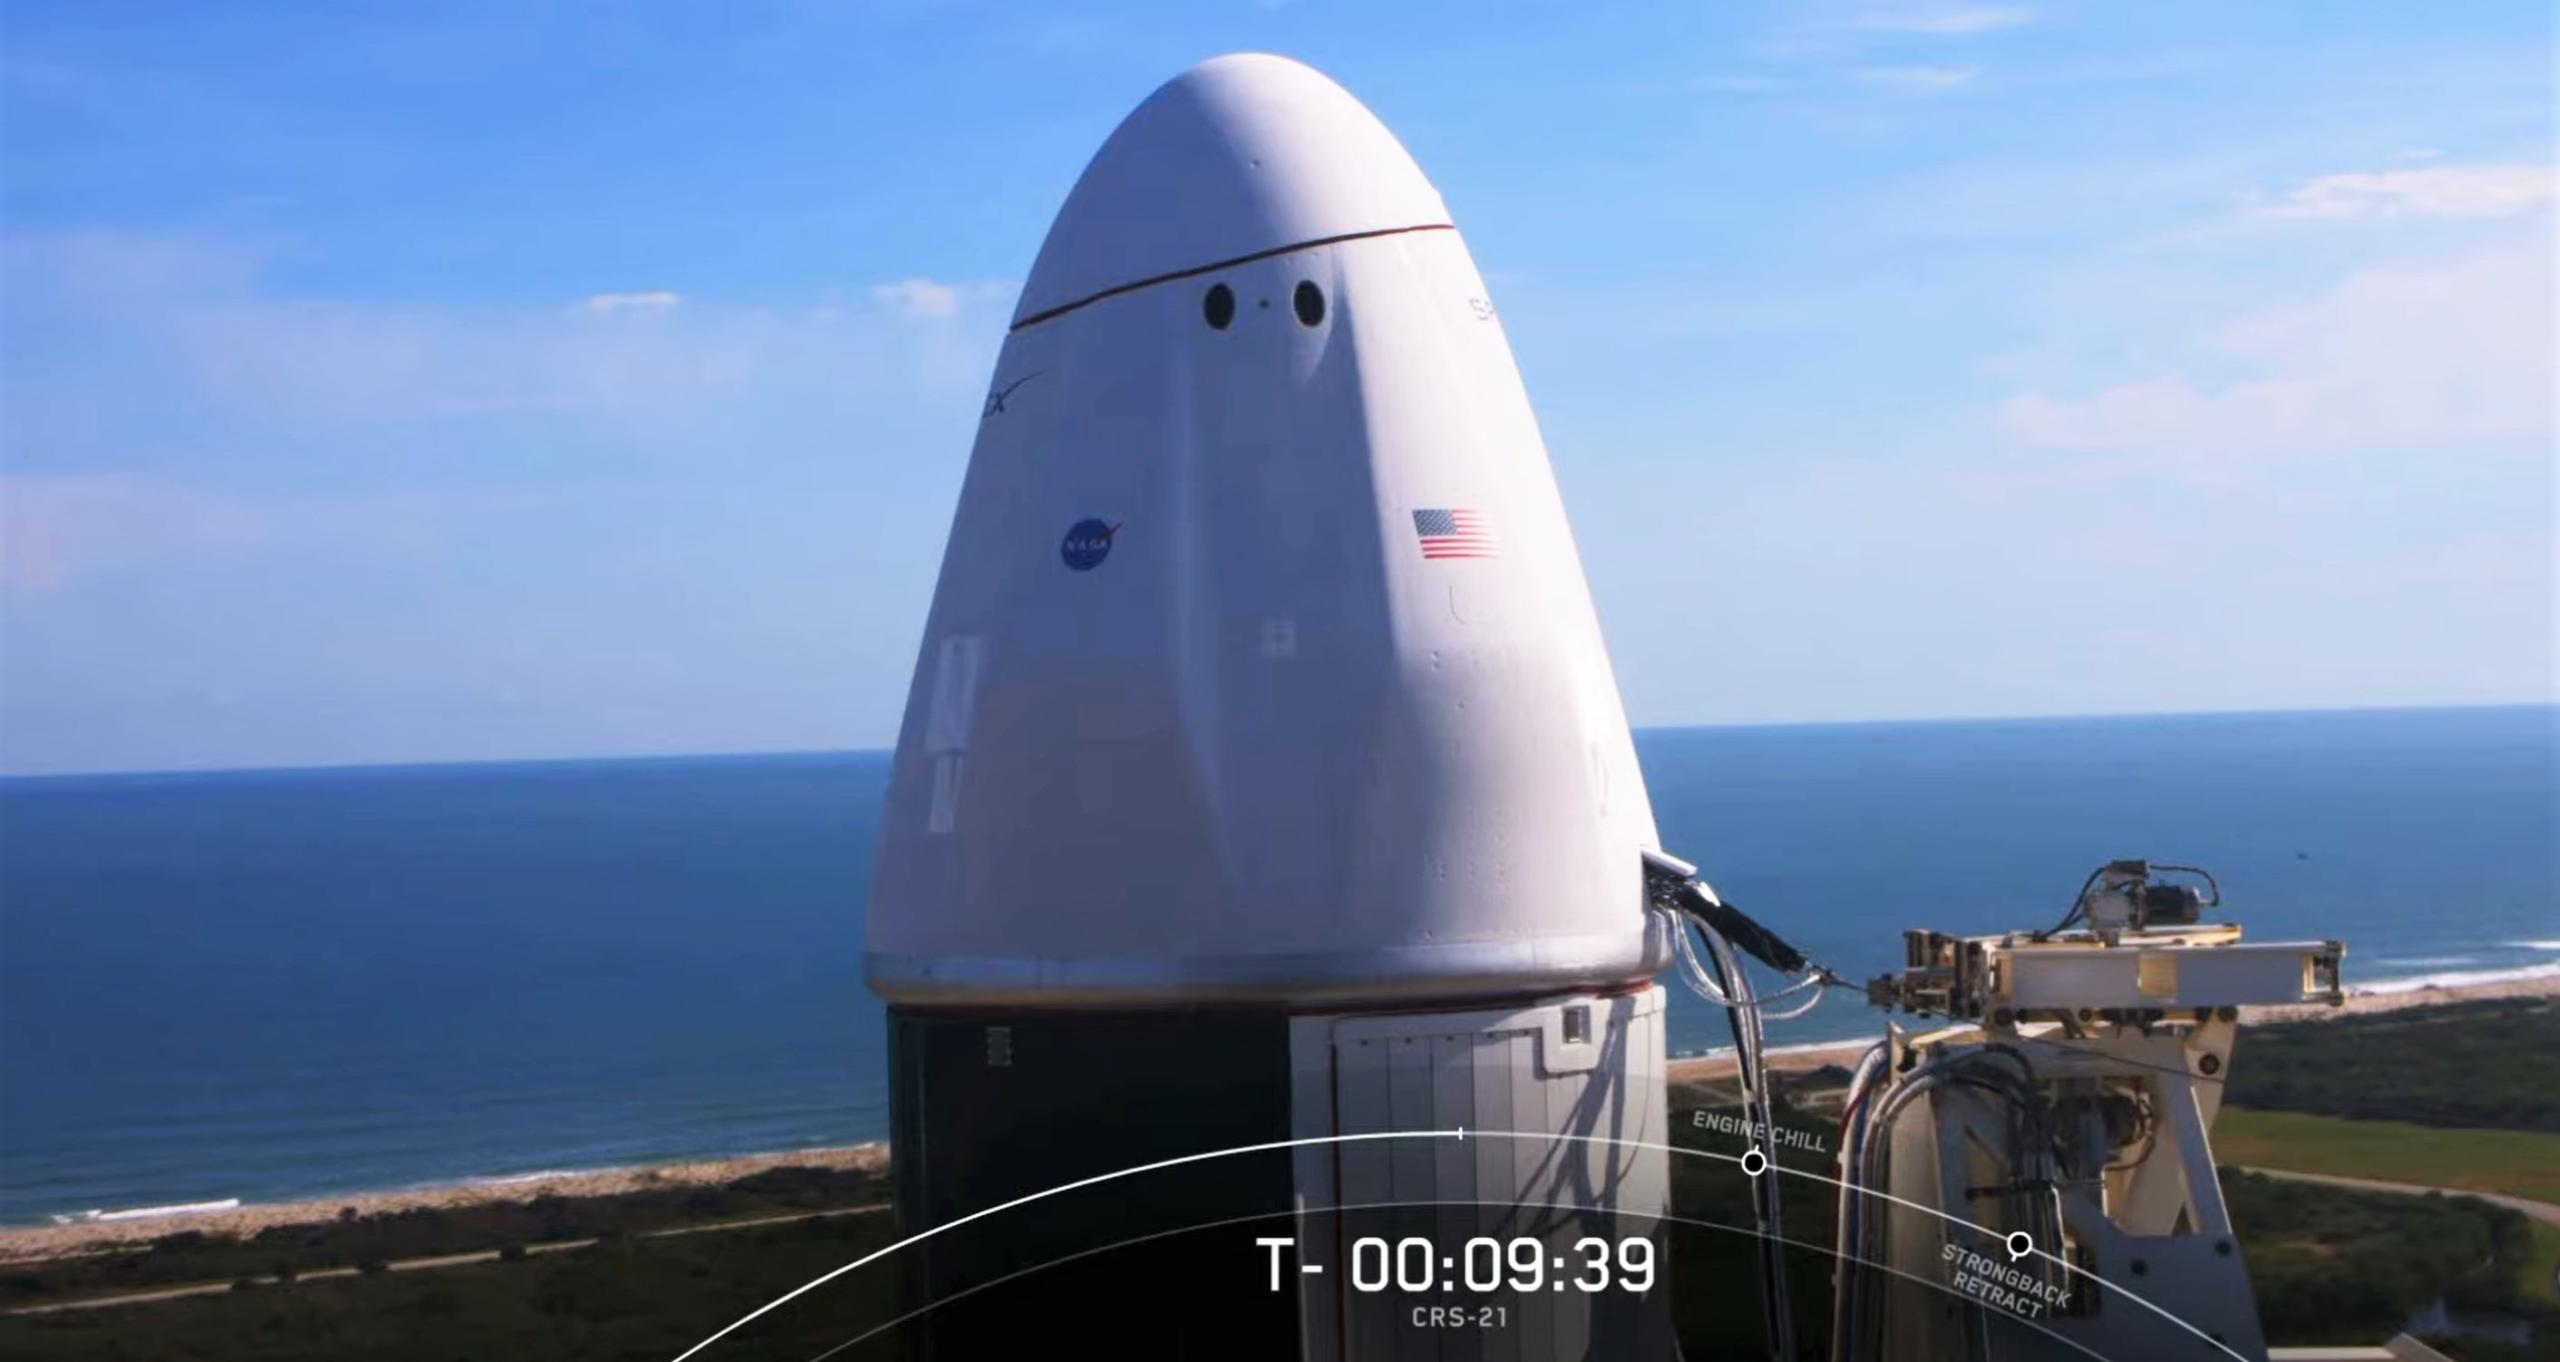 CRS-21 Cargo Dragon 2 Falcon 9 B1058 120620 webcast (SpaceX) 3 (c)